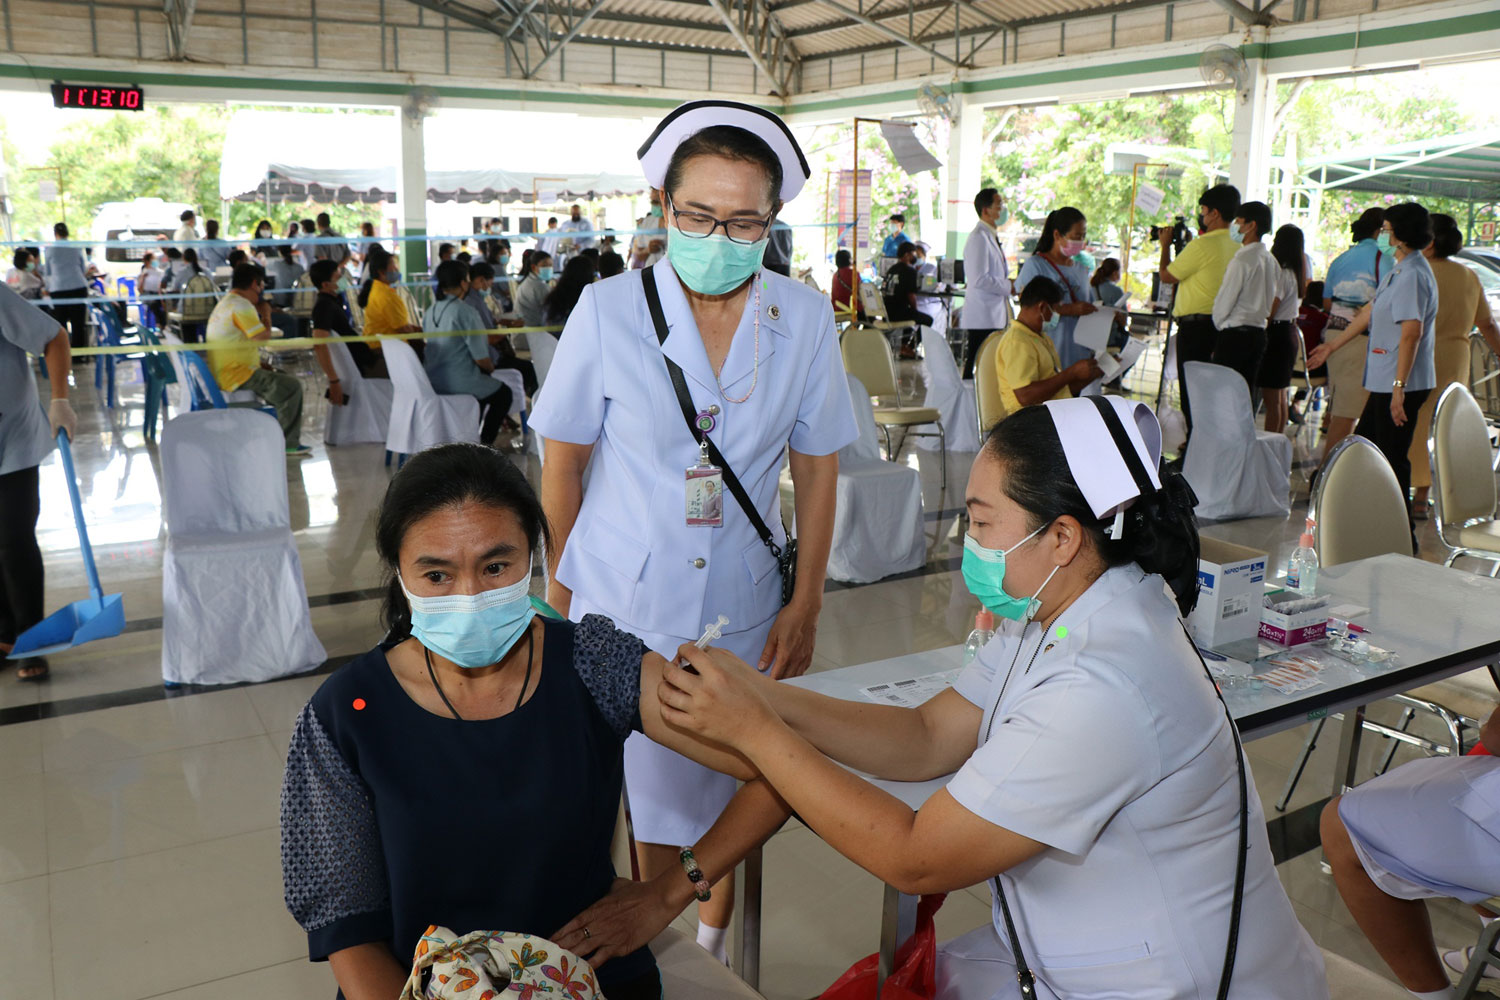 A nurse administers a Covid-19 vaccine on a health volunteer at Phaholpholphayuhasena Hospital in Muang district, Kanchanaburi, on Monday. A total of 100 frontline health volunteers wait in line to get shots at the public hospital. (File photo: Piyarat Chongcharoen)